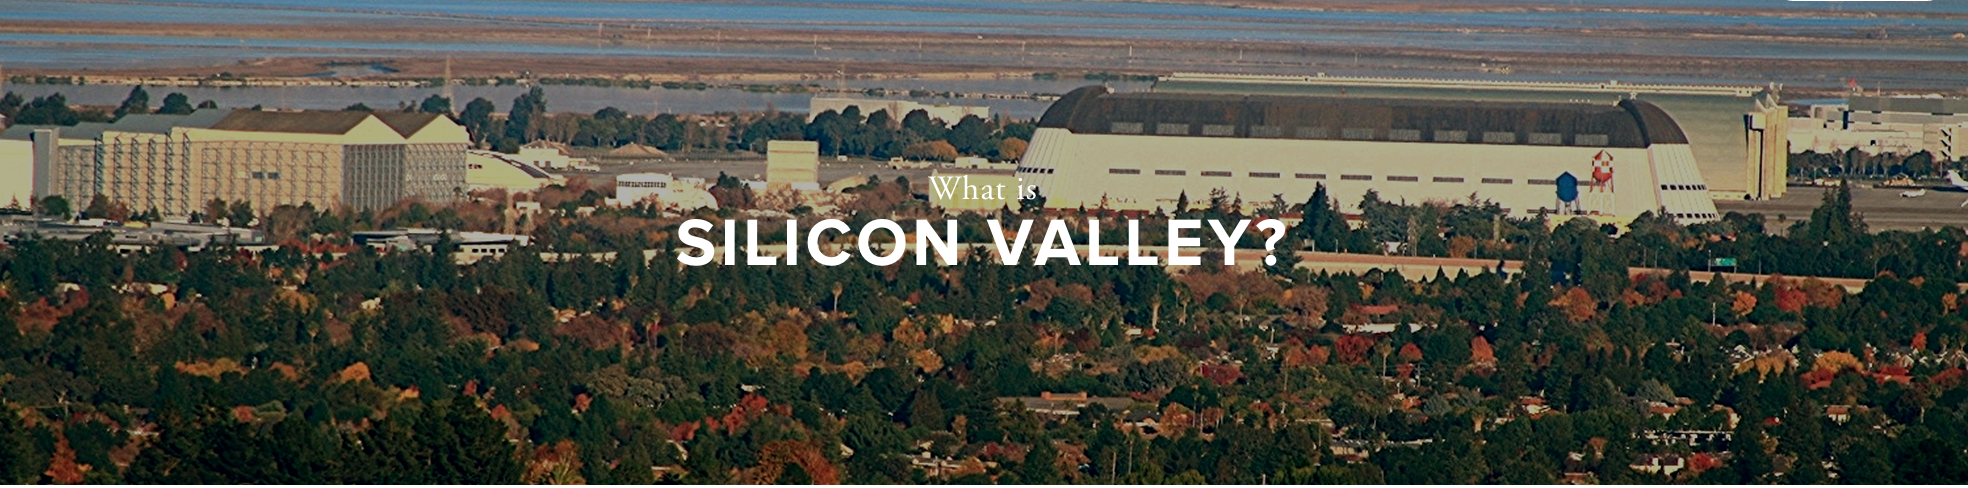 What is Silicon Valley?